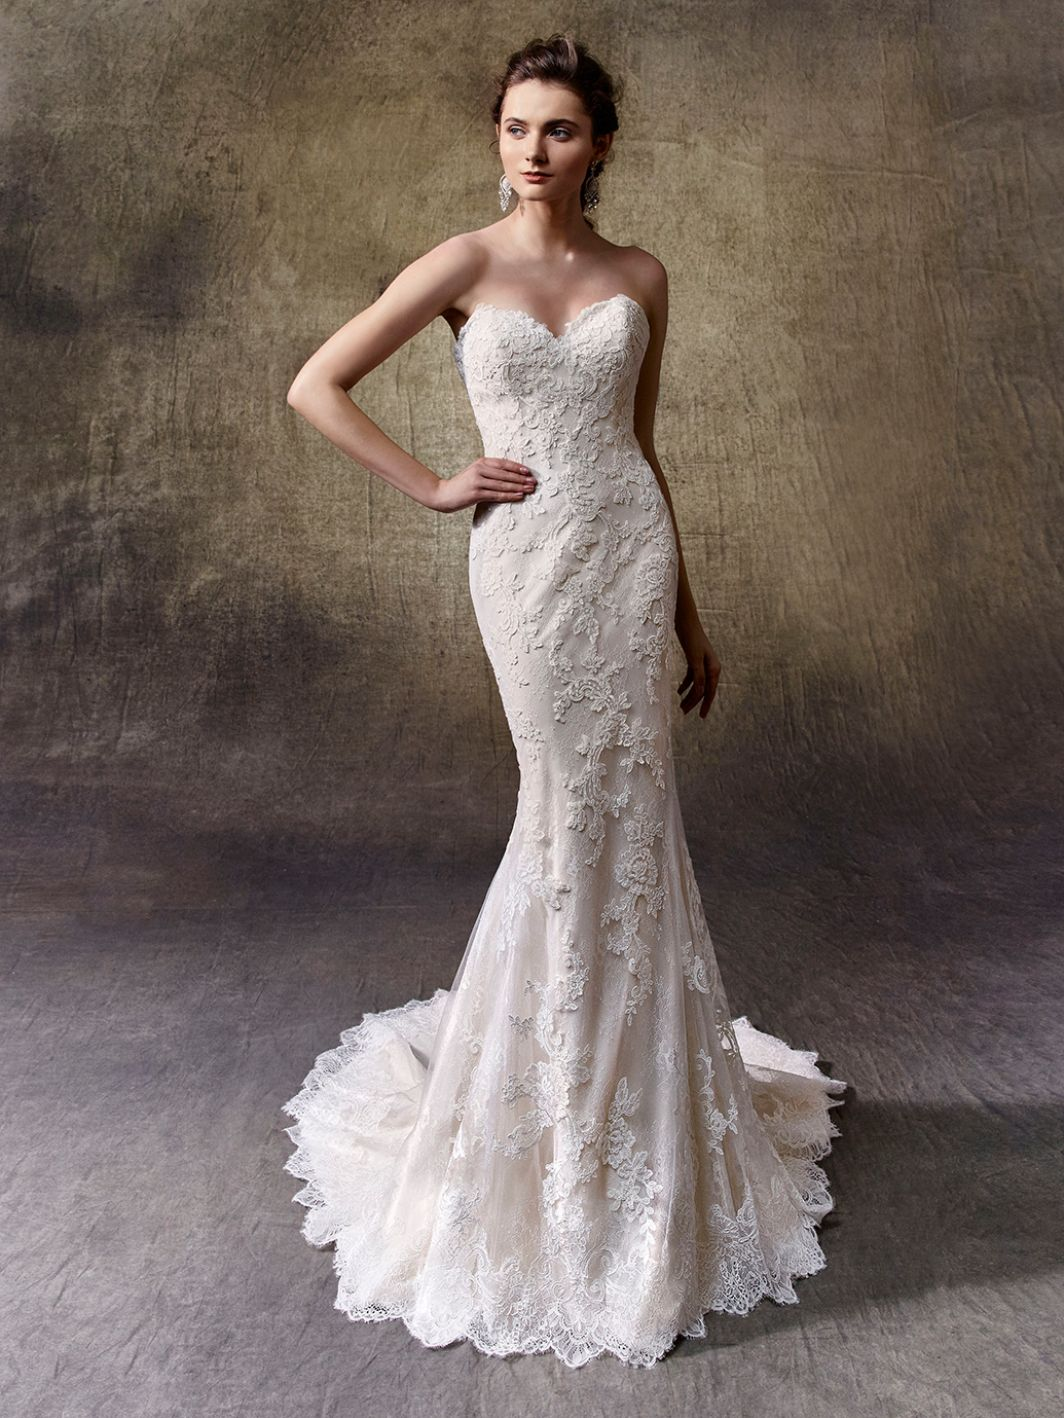 Lucie - Sample Gown, Online Sample Sale, Enzoani - Sample Gown - Eternal Bridal